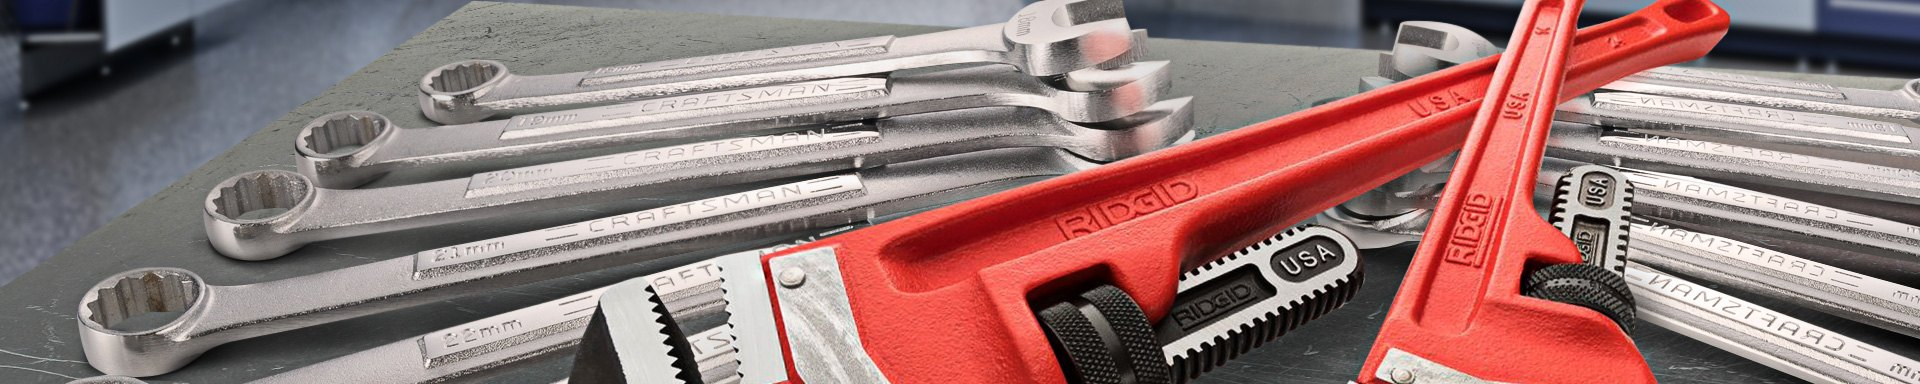 Wrenches & Sets | Lug, Hex, Ratchet, Line, Torx - TOOLSiD com